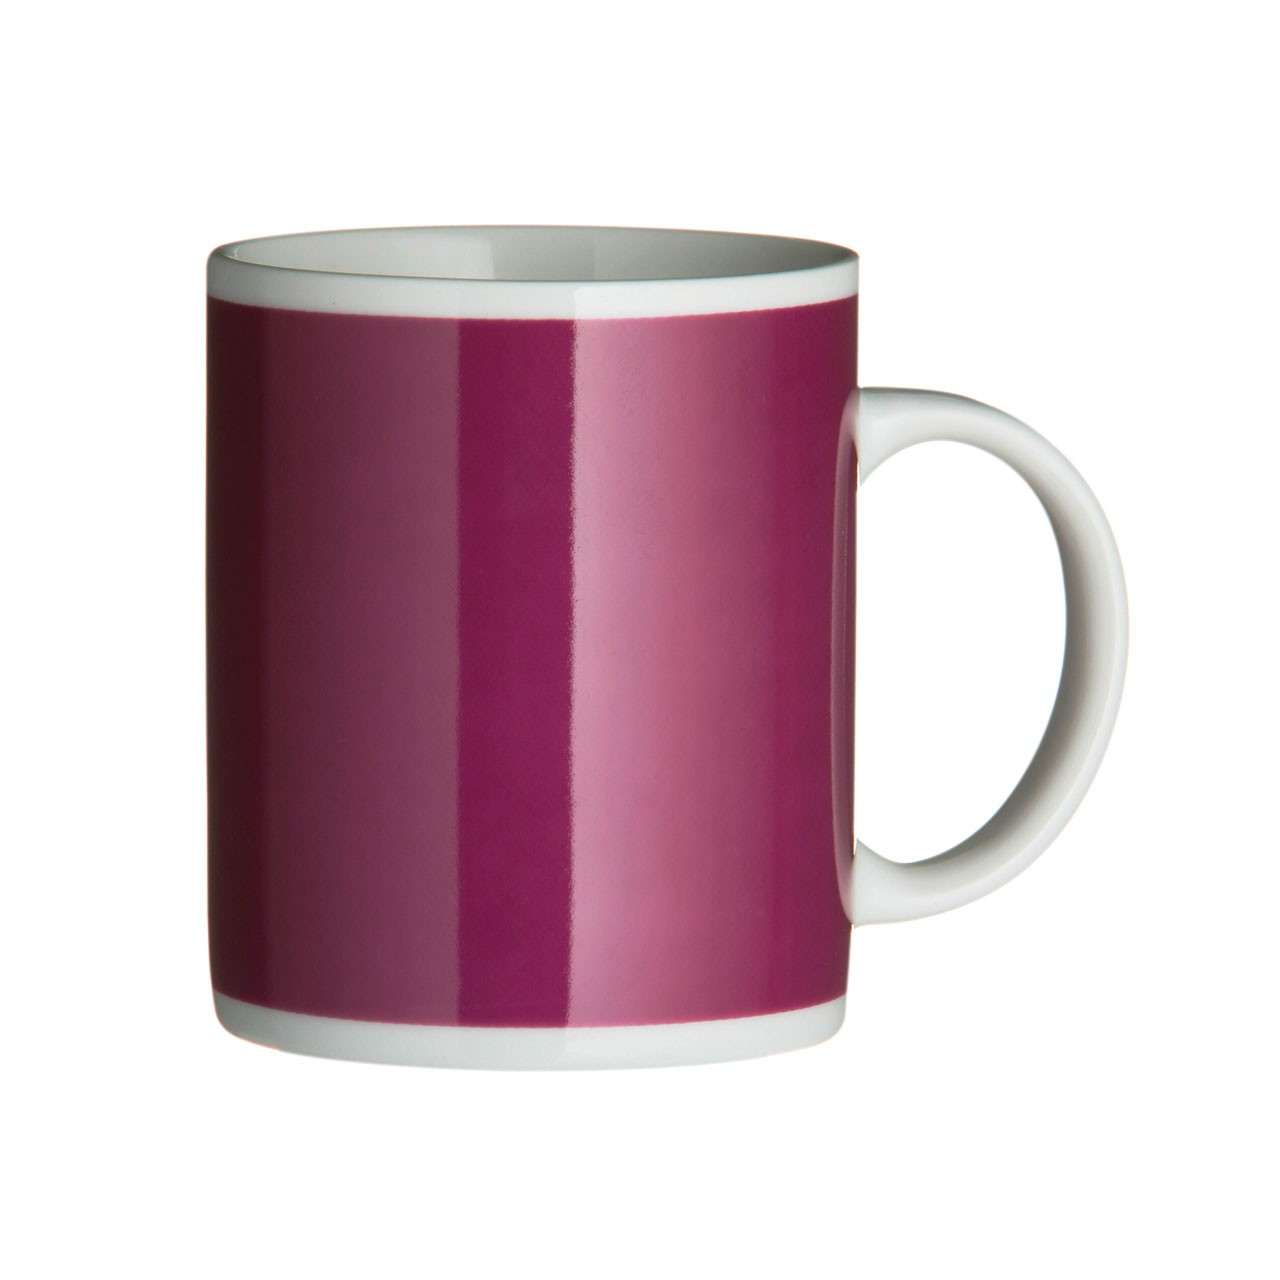 Porcelain 11 oz Mugs - Berry, Set of 6